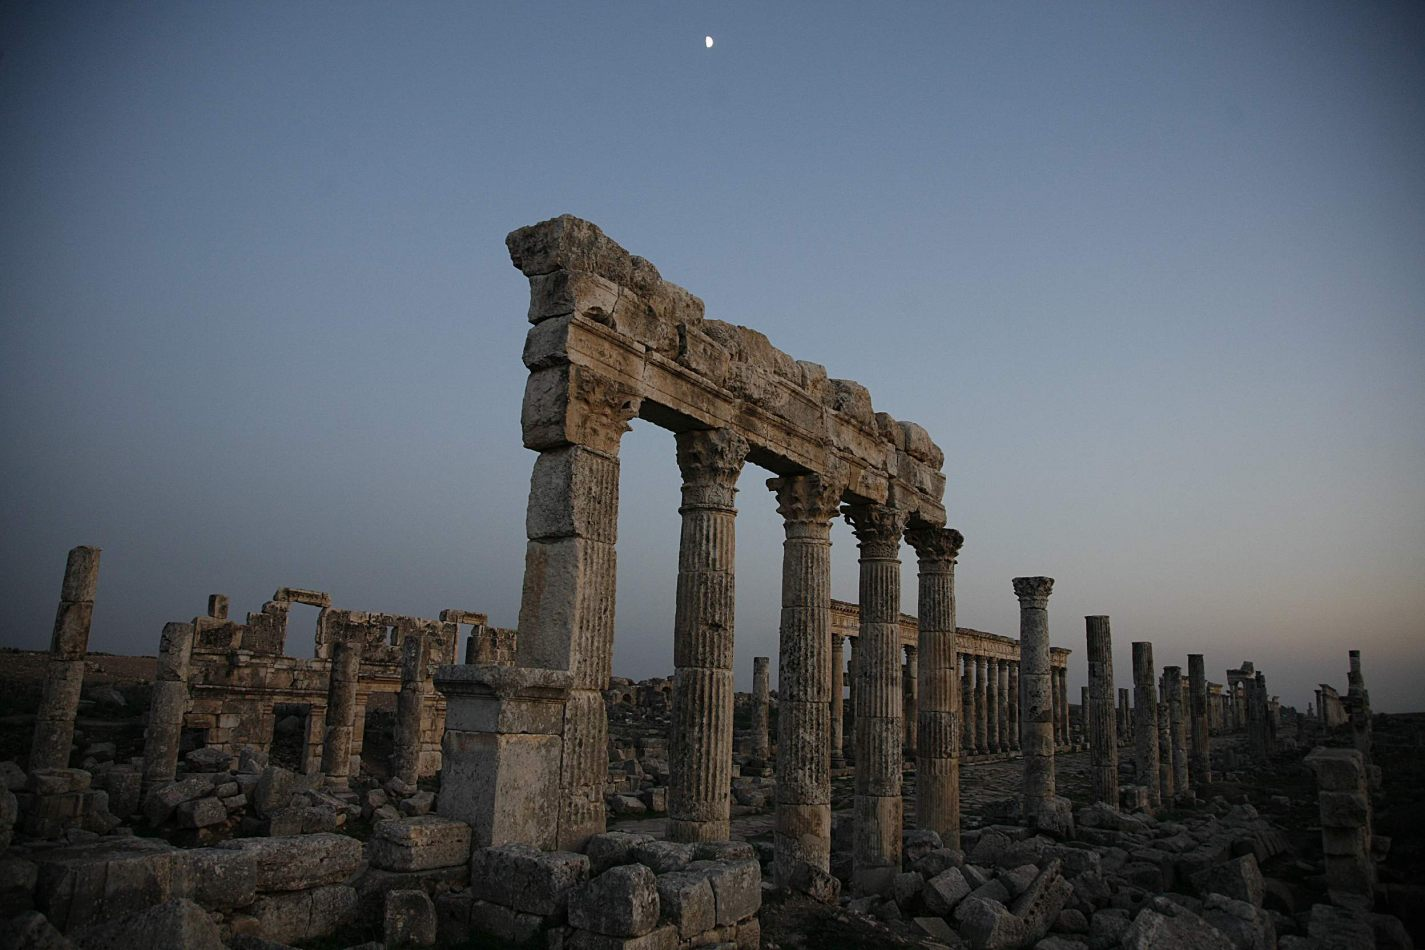 Anthony Ellis Photography: Shadows and Steps - Half a Moon Over Apamea